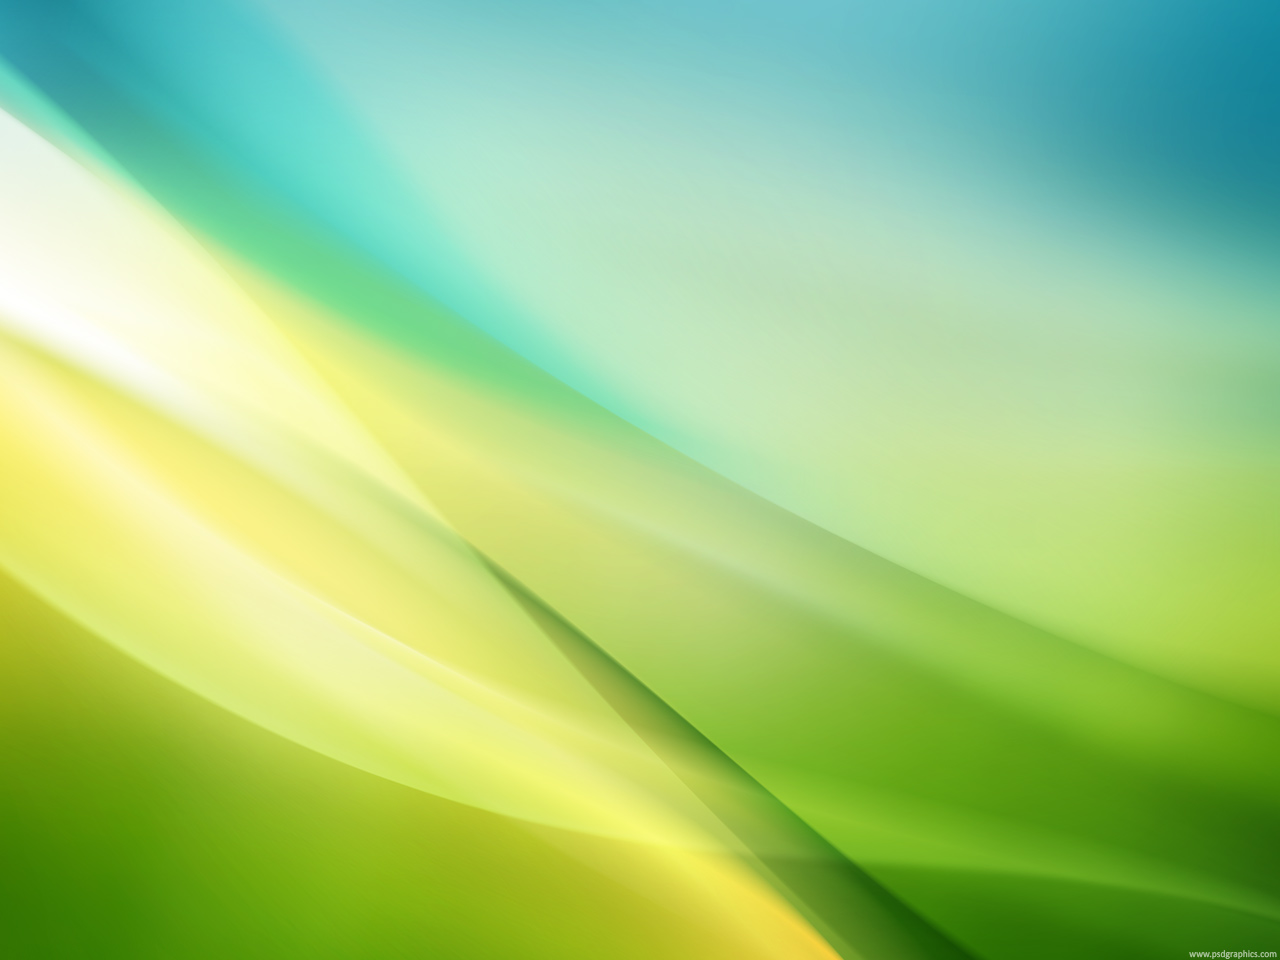 blue and green graphic wallpaper - photo #1